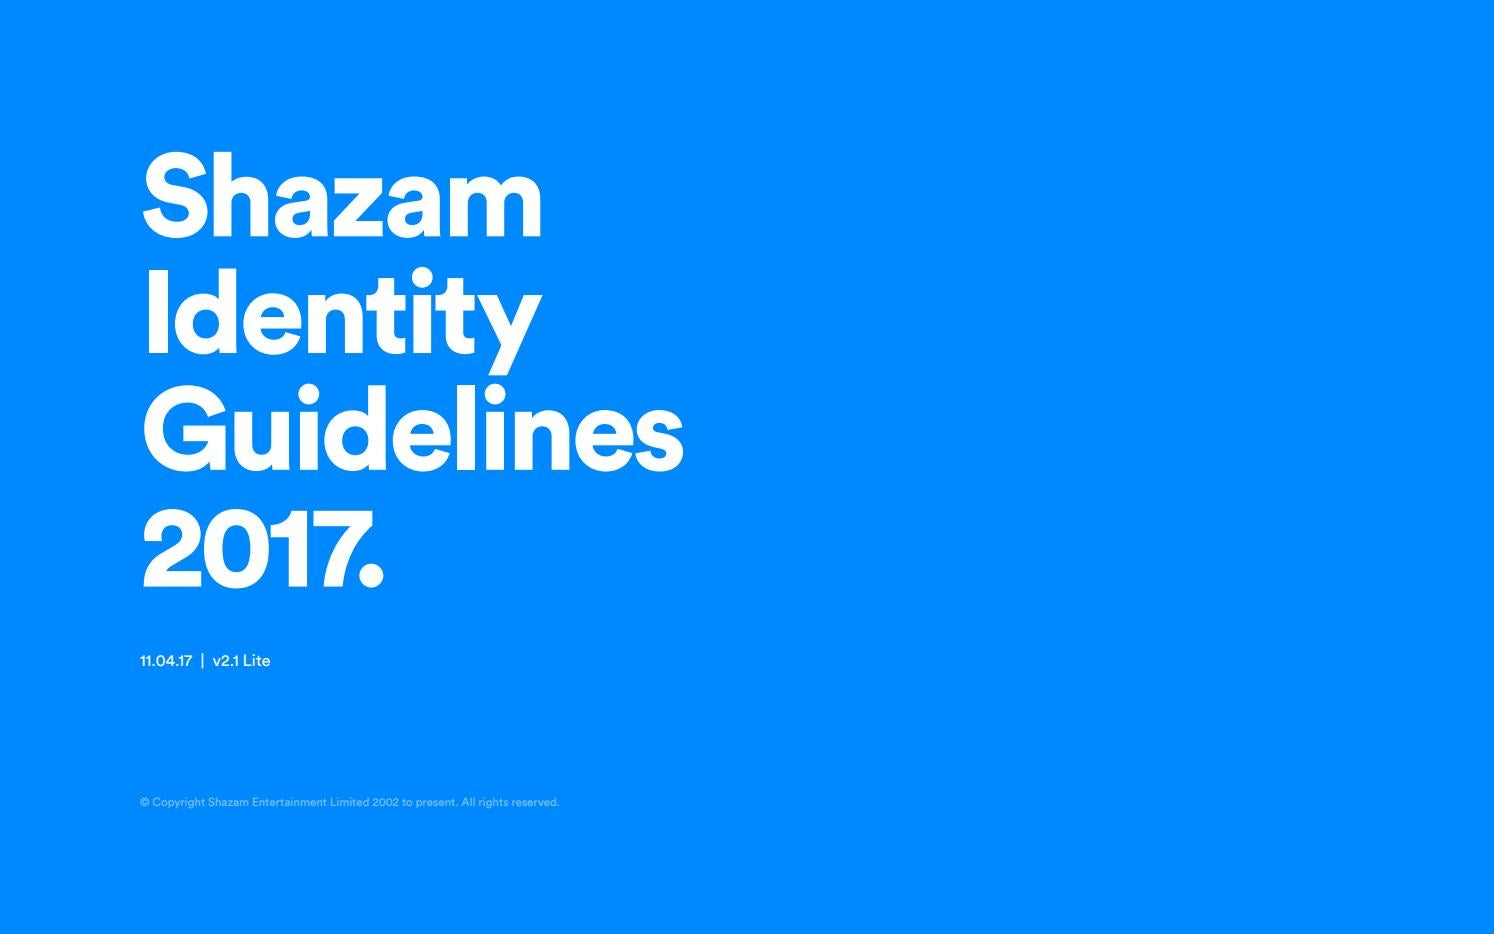 Shazam Brand and Identity Guidelines 2017 by Duncan Riley